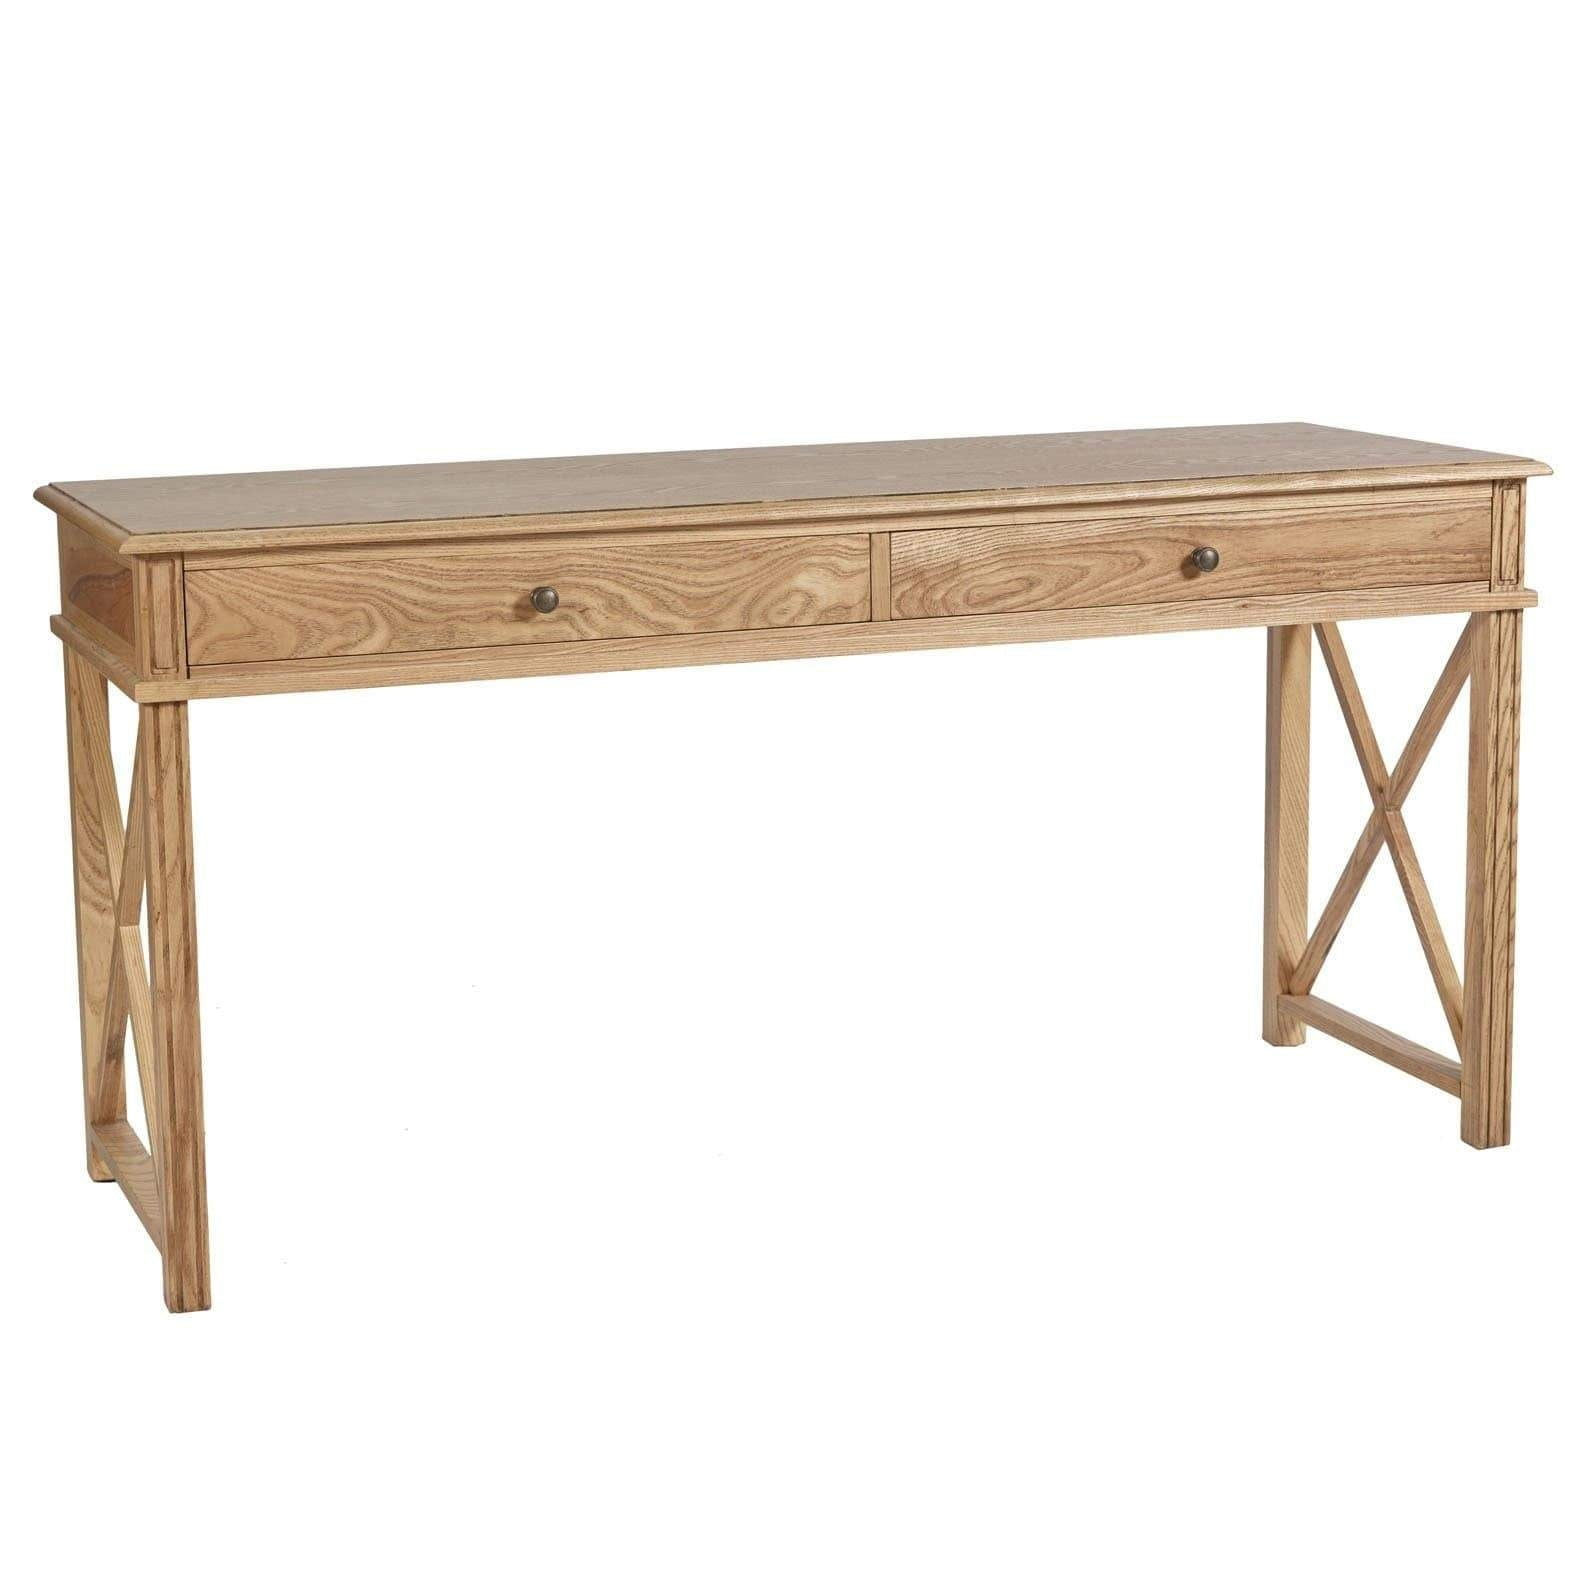 Sydney Hamptons Desk - Elm